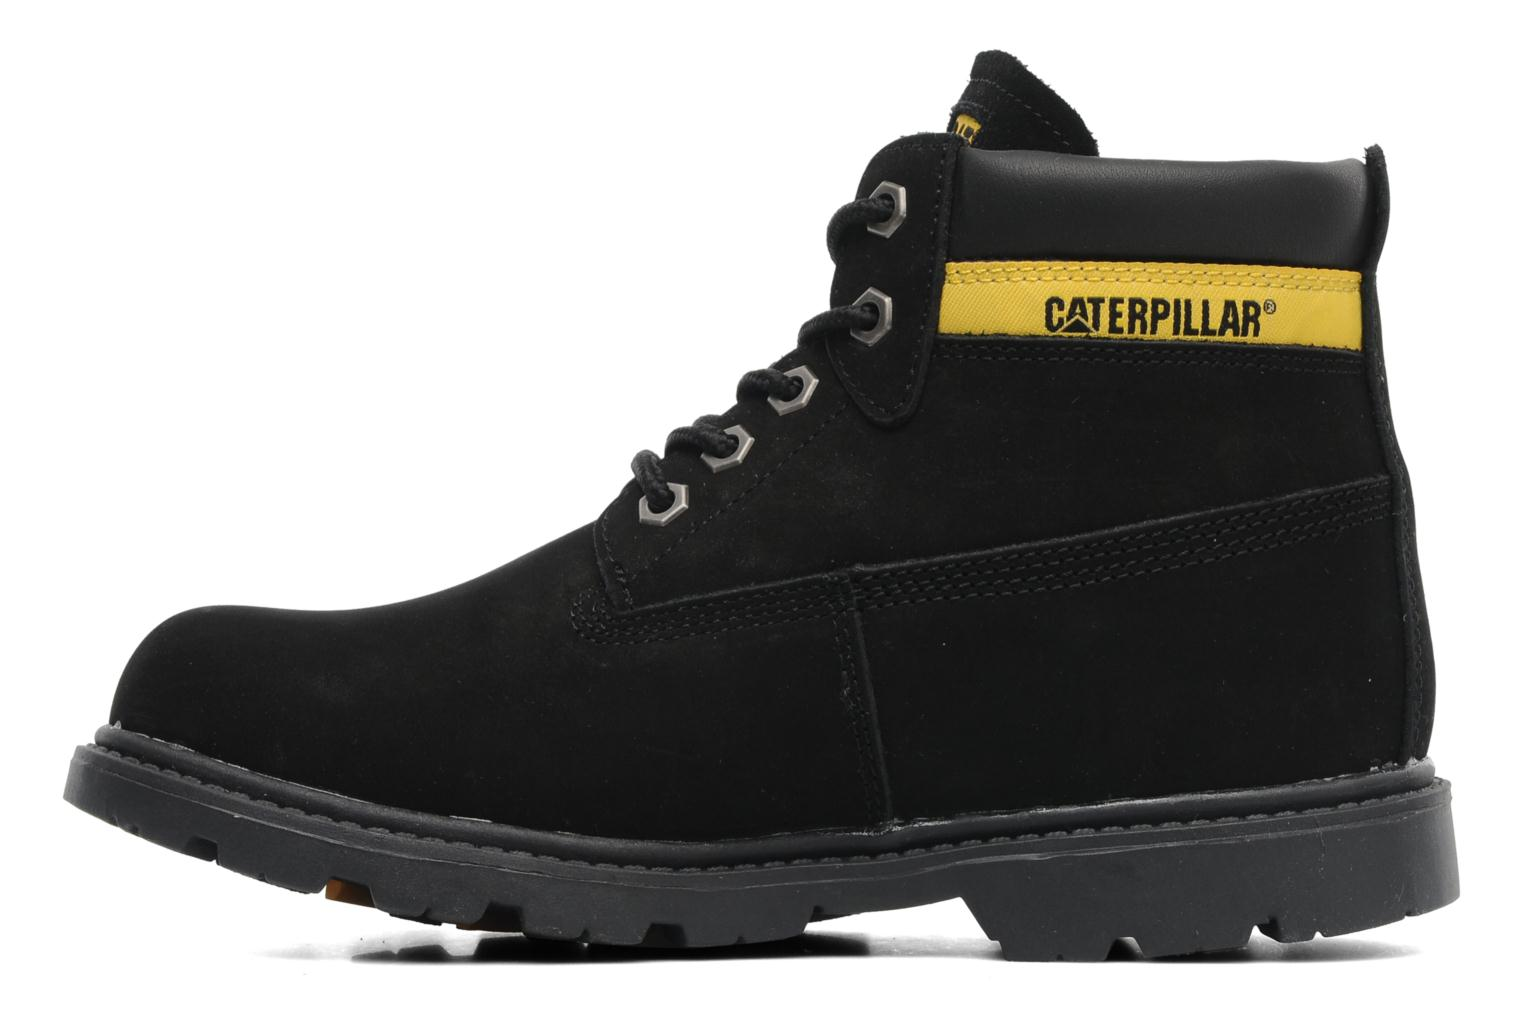 Bottines et boots Caterpillar Colorado Plus Noir vue face